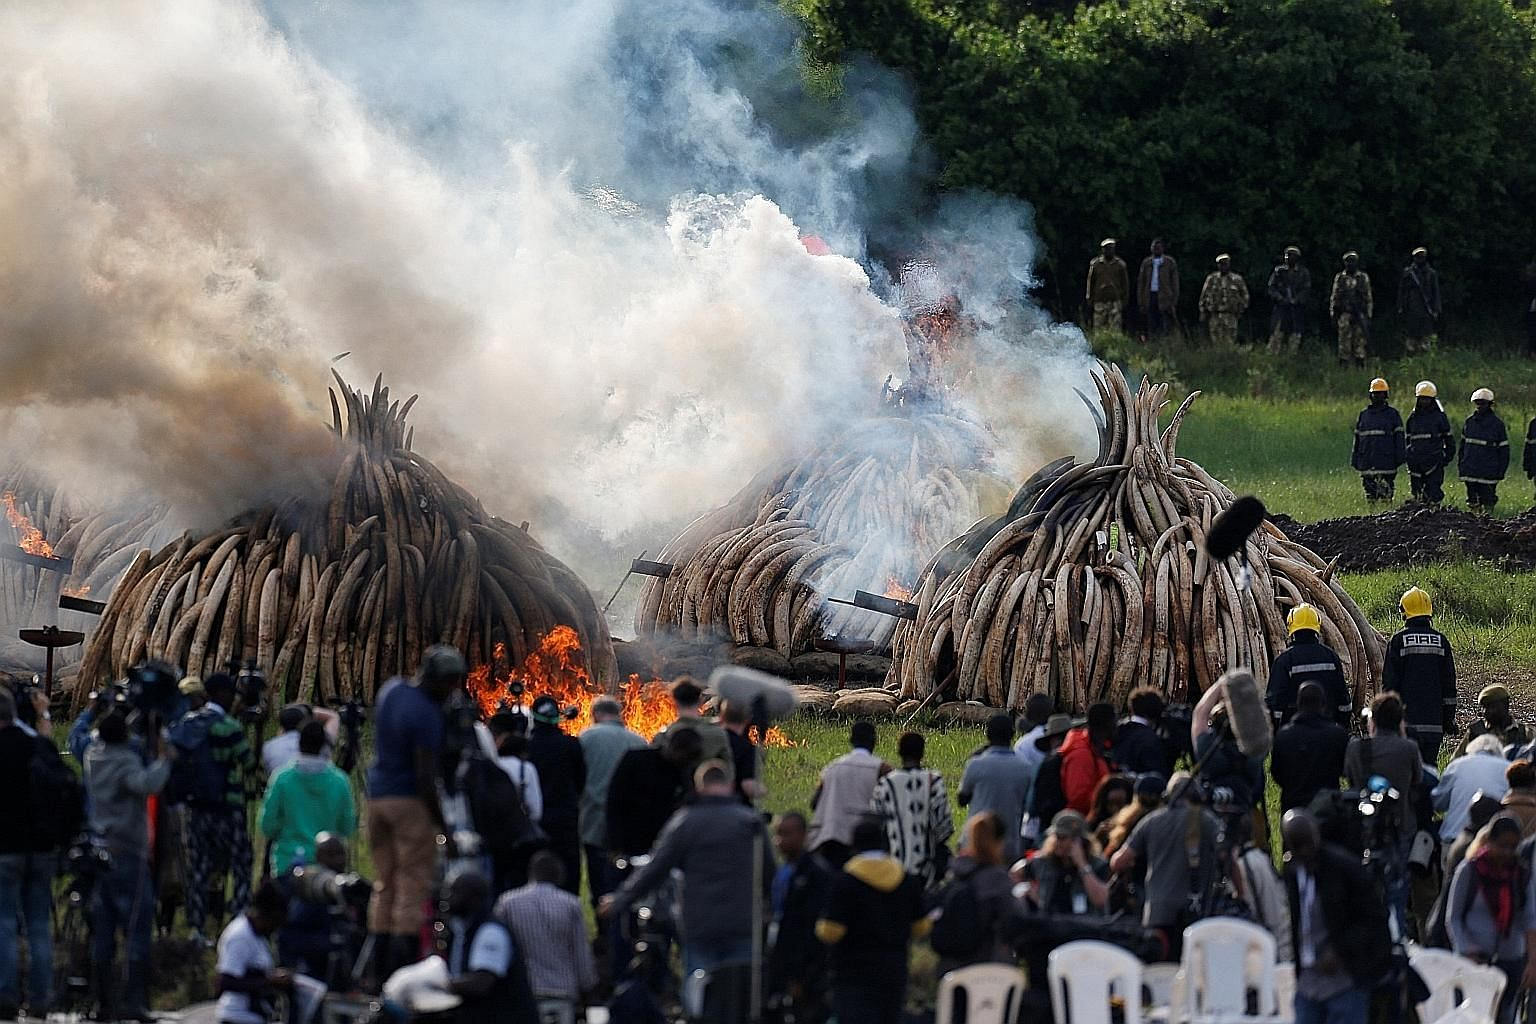 The ivory bonfire was fuelled by a mix of thousands of litres of diesel and kerosene injected through steel pipes buried in the ground leading into the tusk pyramids.